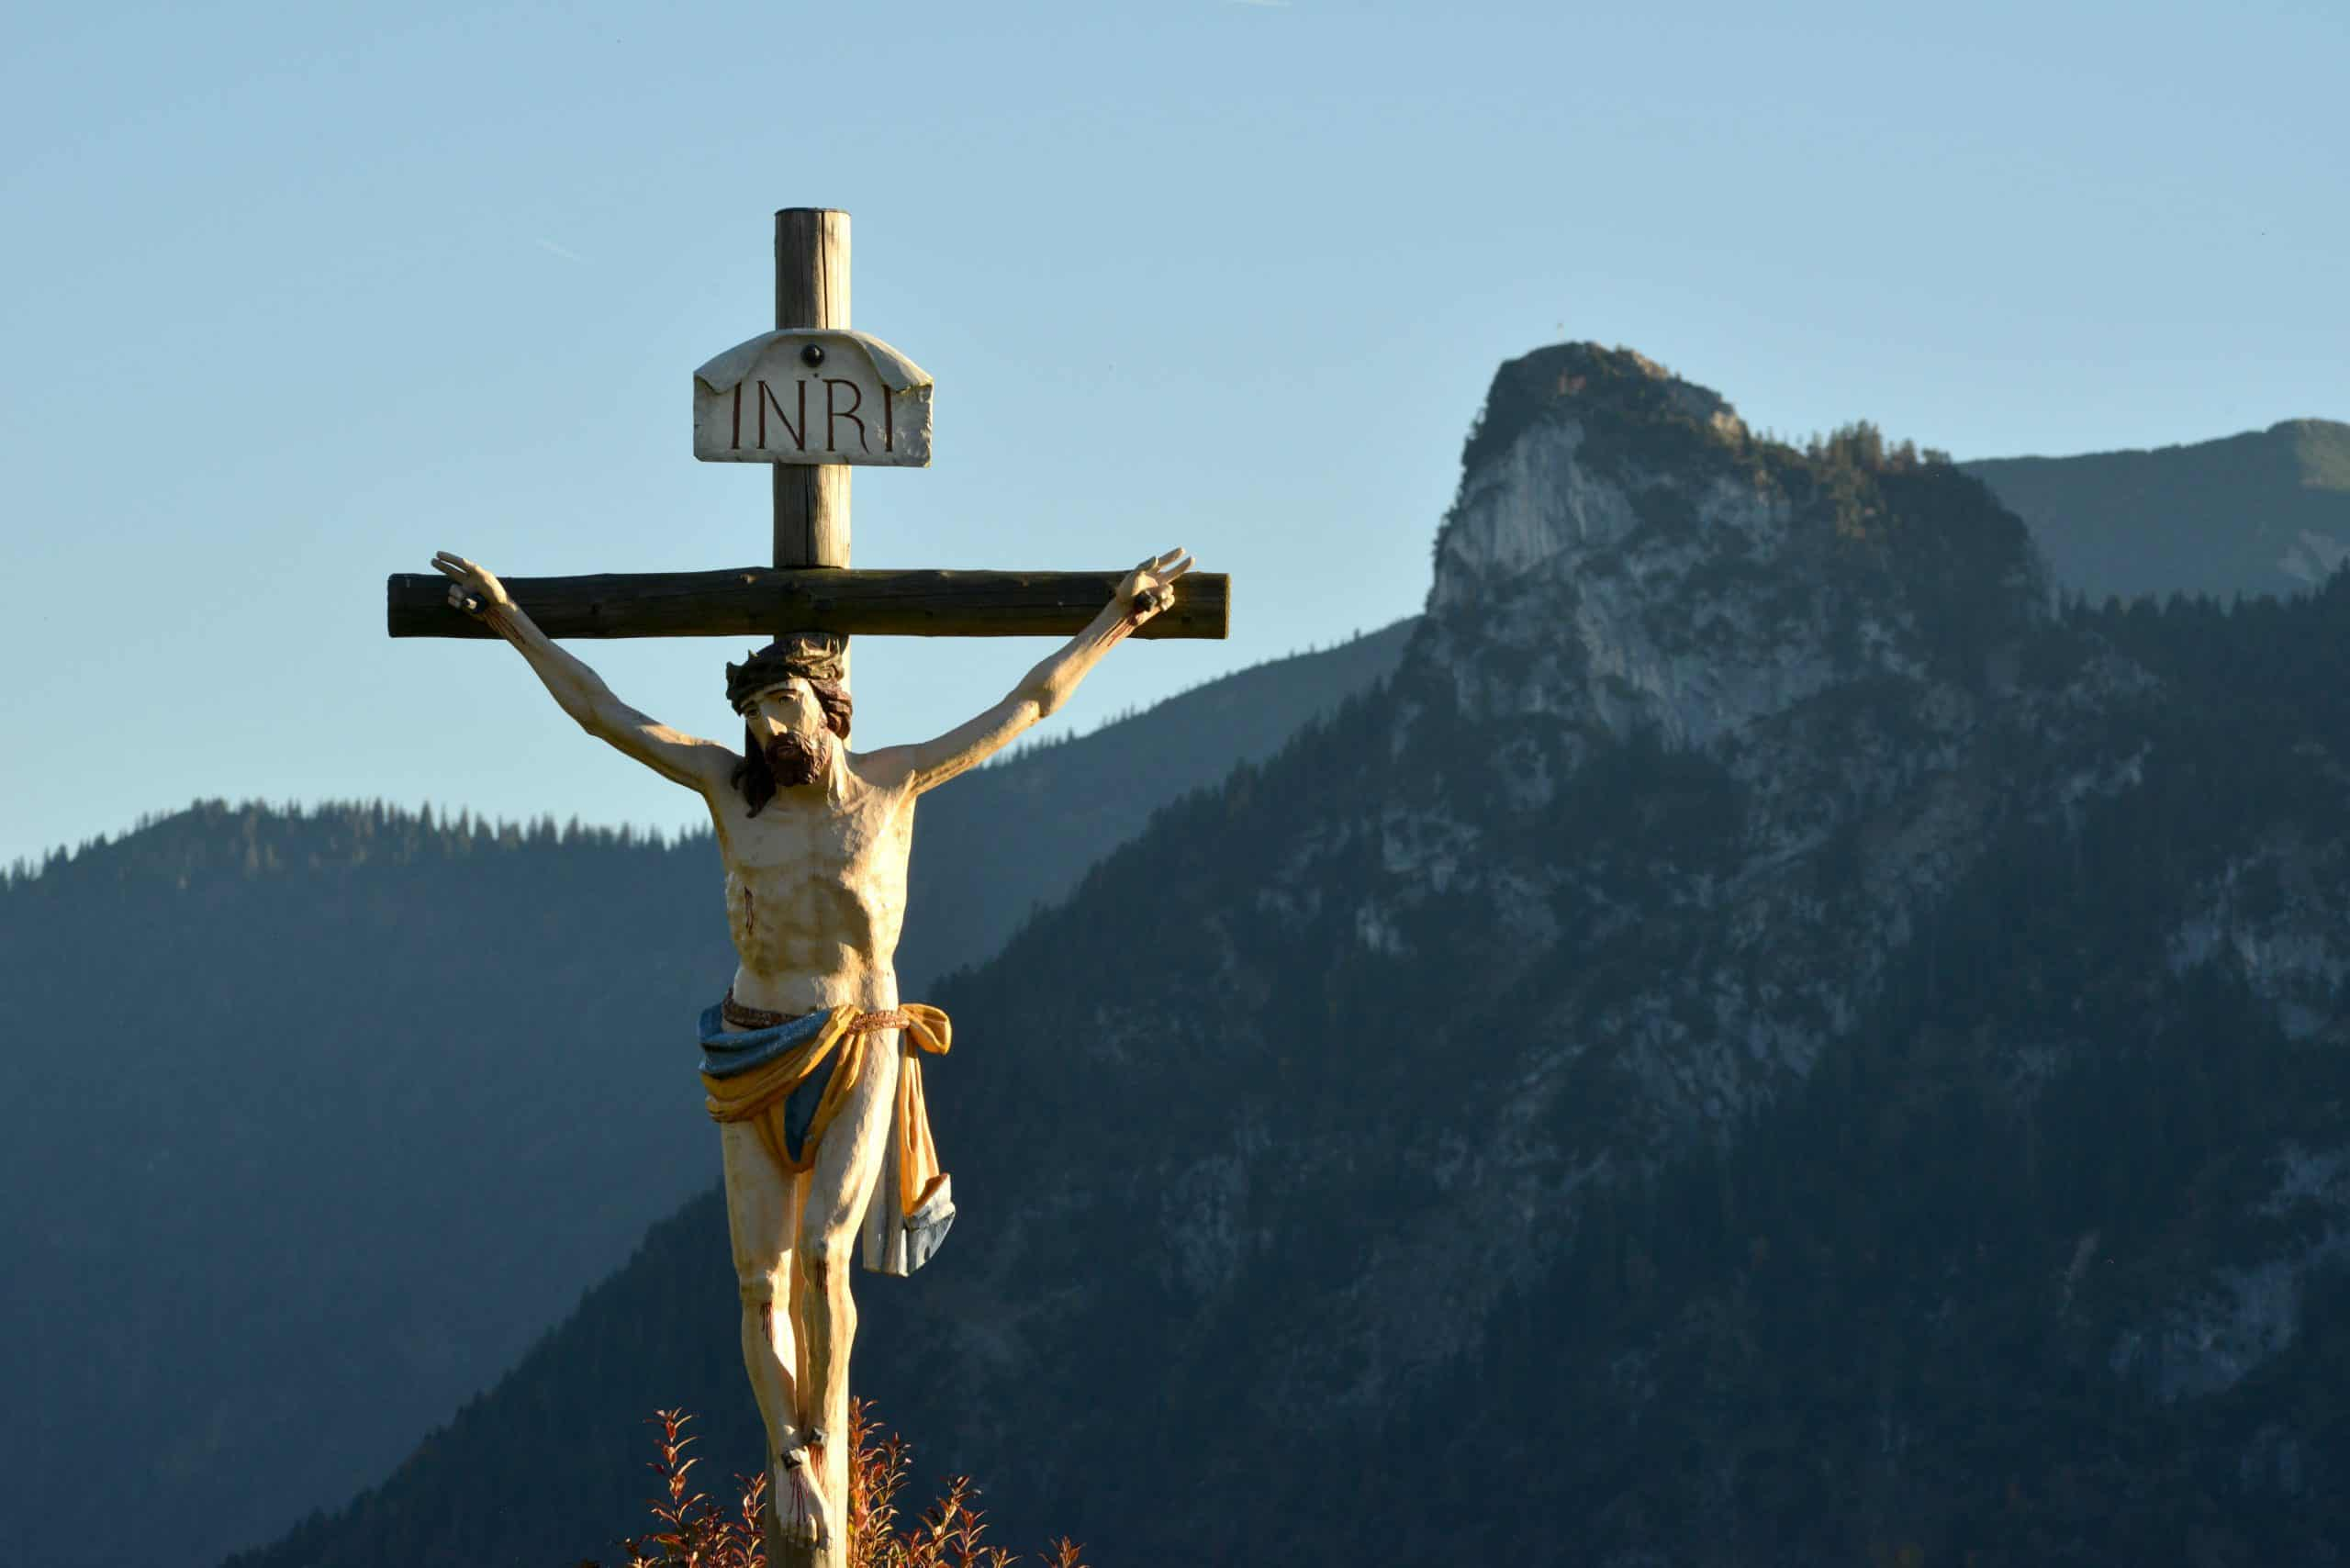 Oberammergau – July 2022